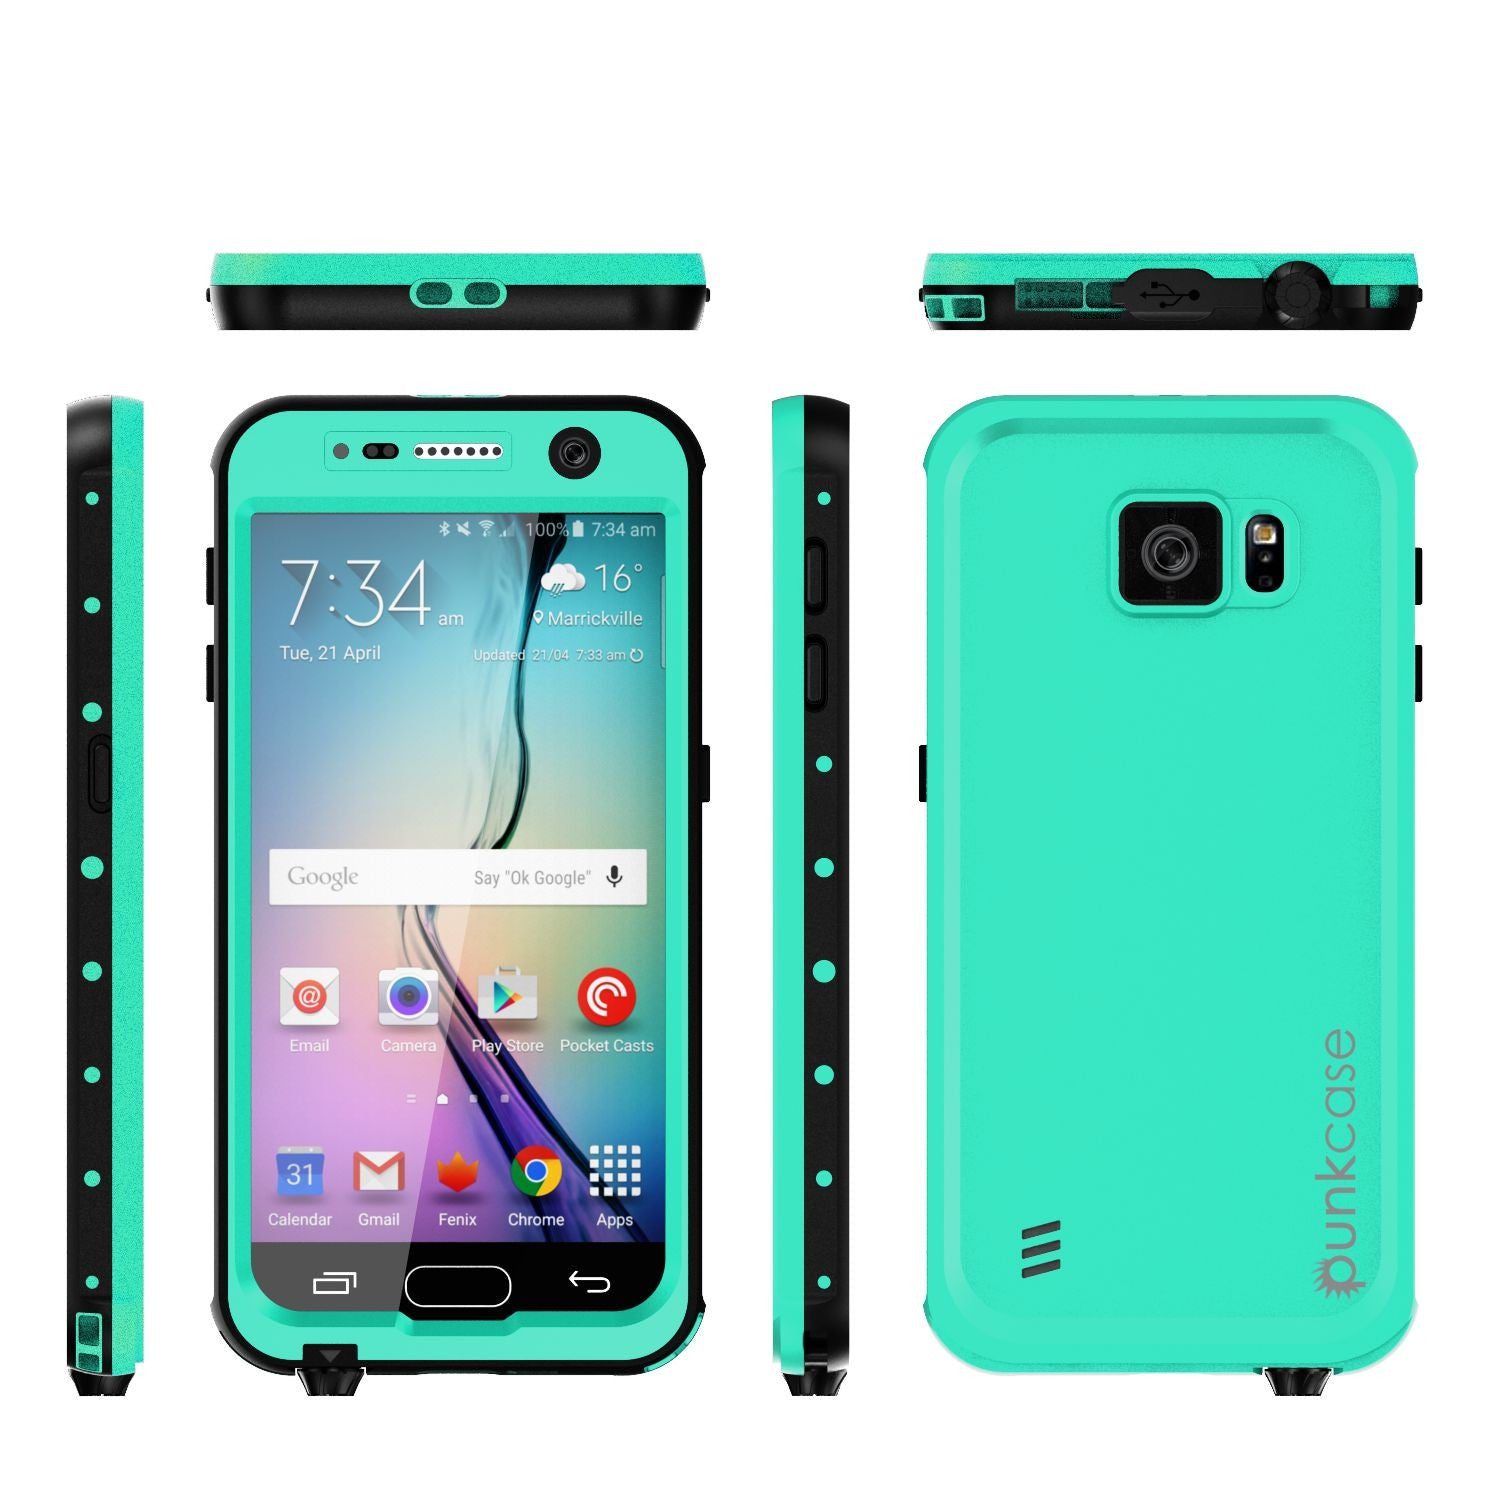 Galaxy S6 Waterproof Case PunkCase StudStar Teal Thin 6.6ft Underwater IP68 Shock/Dirt/Snow Proof